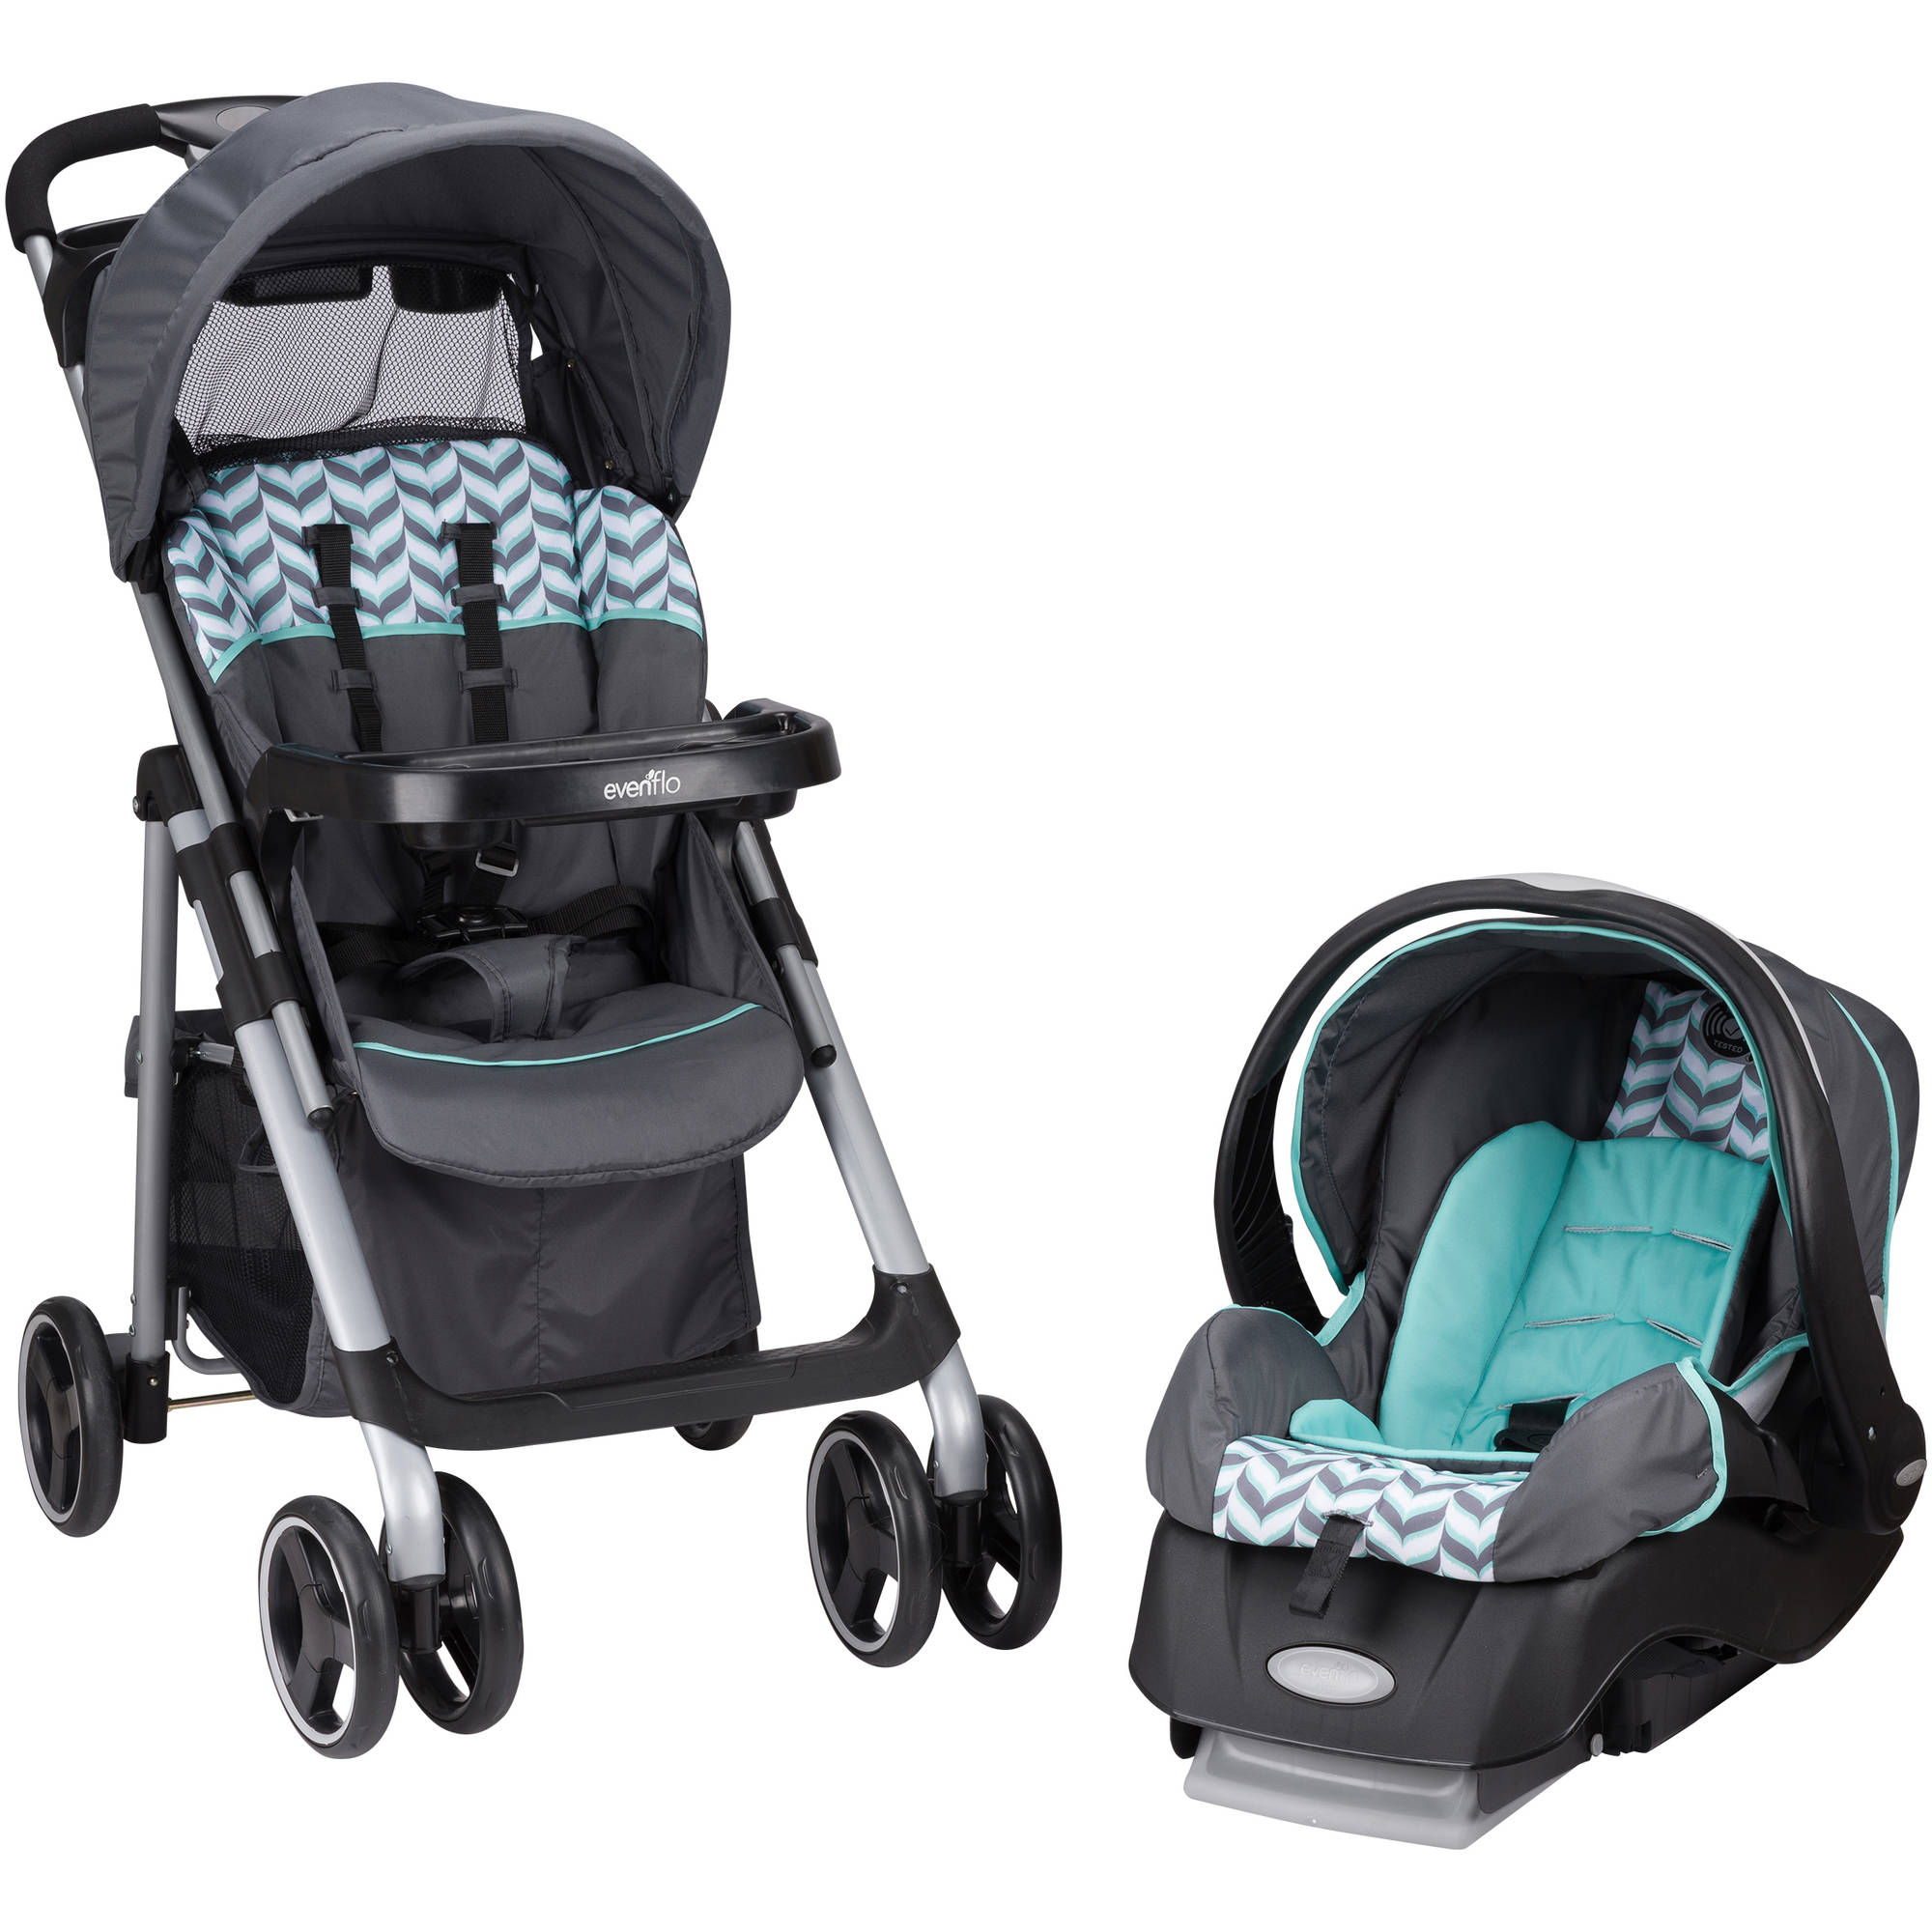 Evenflo Vive Travel System Spearmint Spree Walmart Com